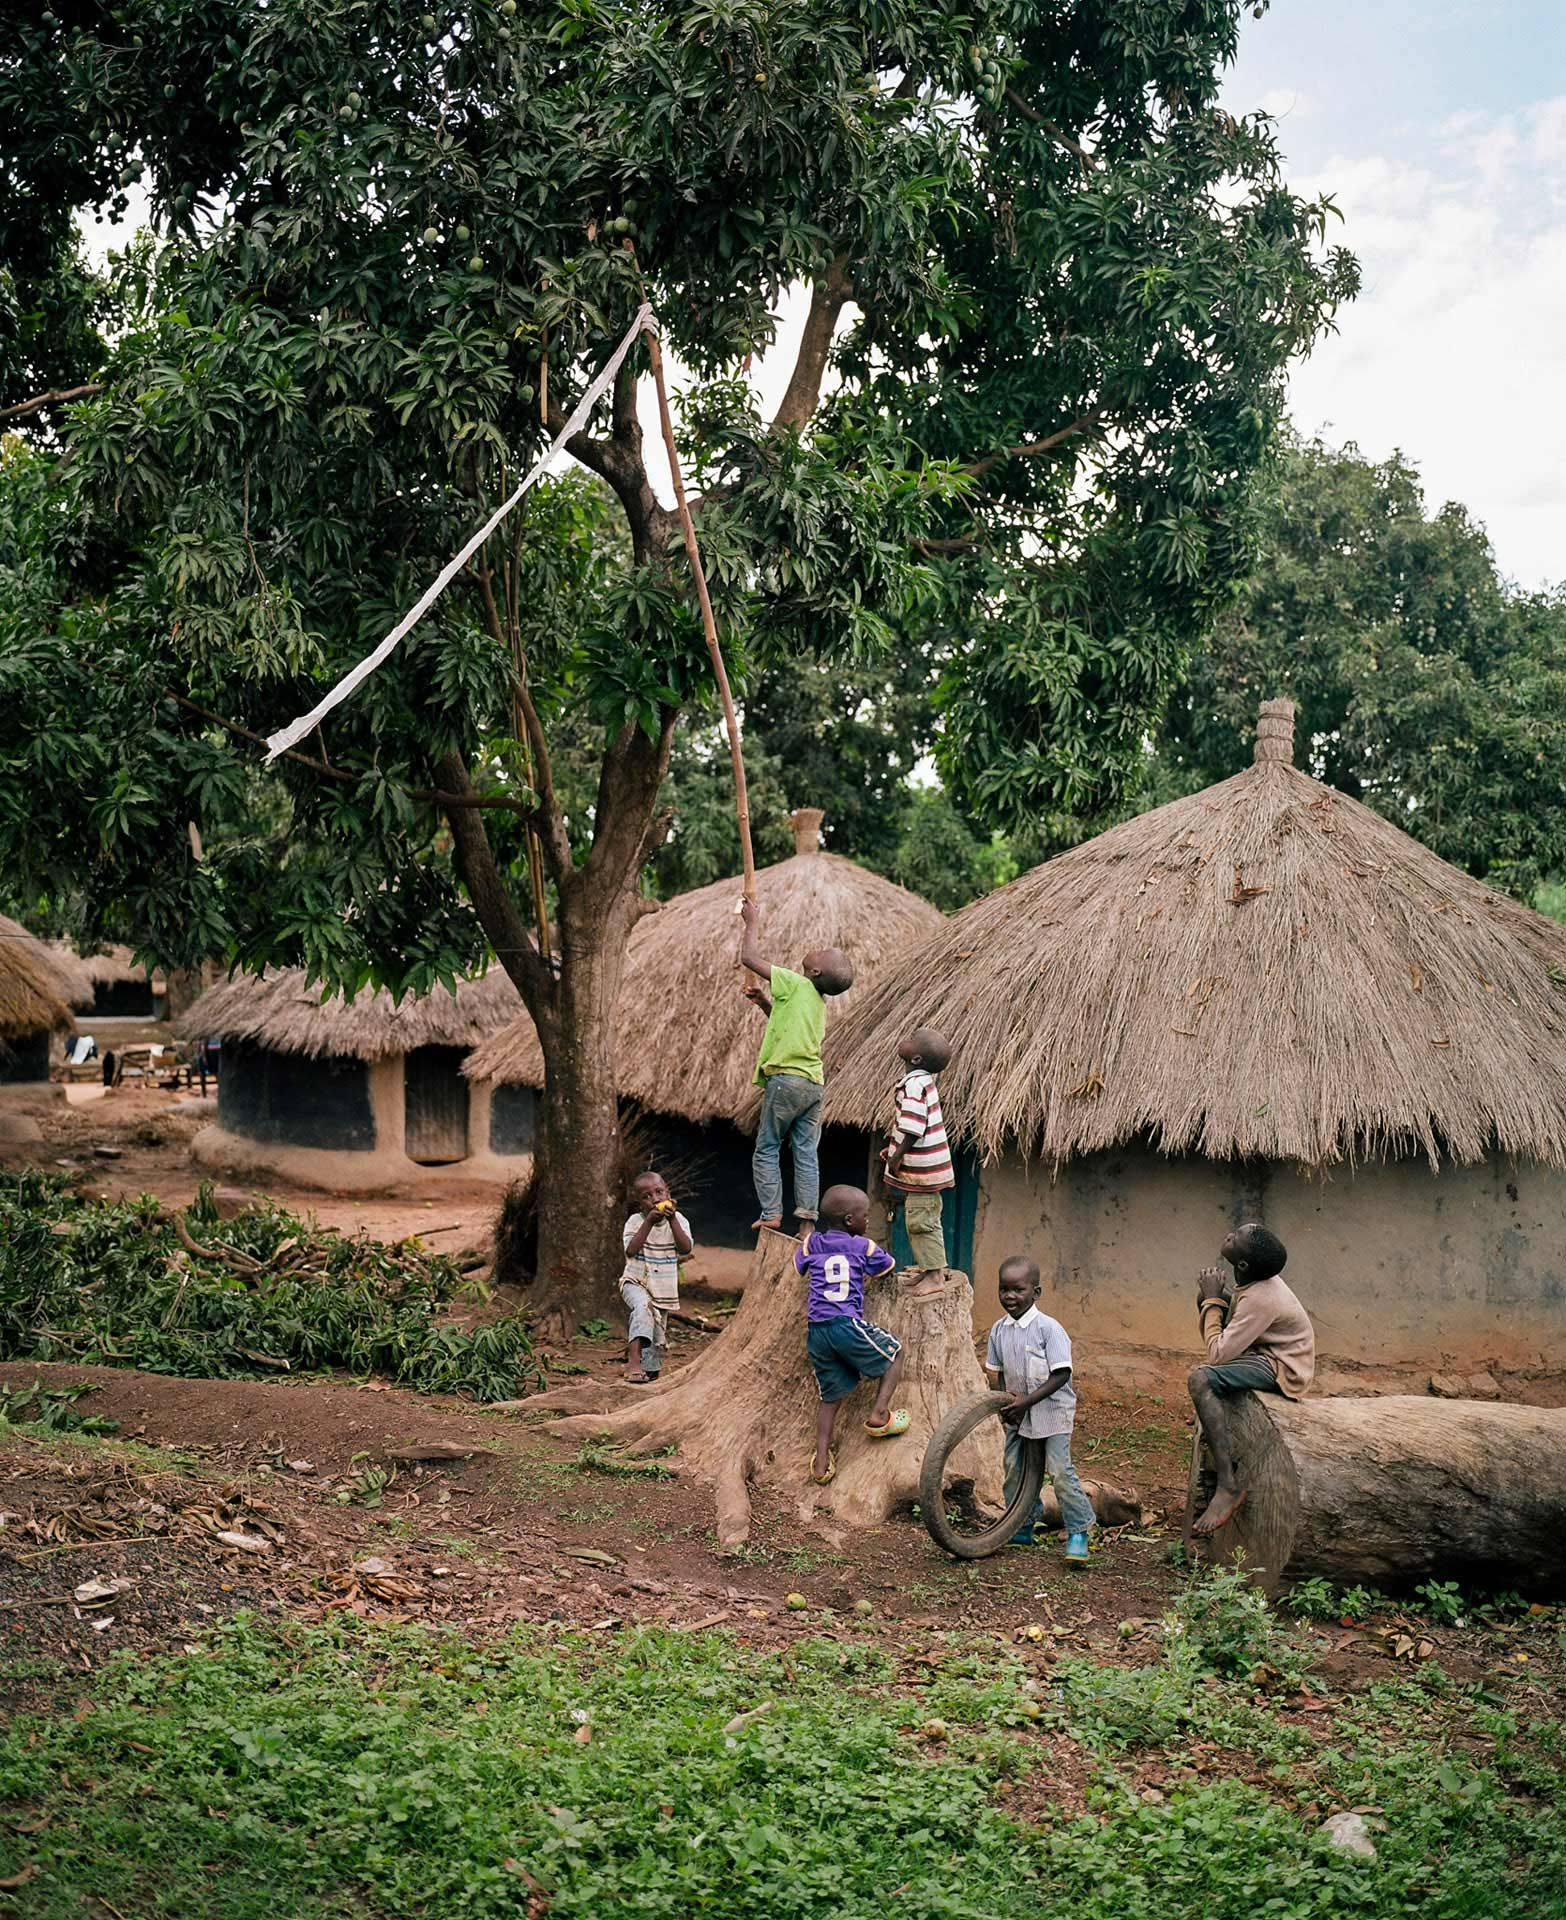 little black boys using a perch with a net to gather mangos from trees by Alexi Hobbs in Uganda for Football for Good with Sportsnet